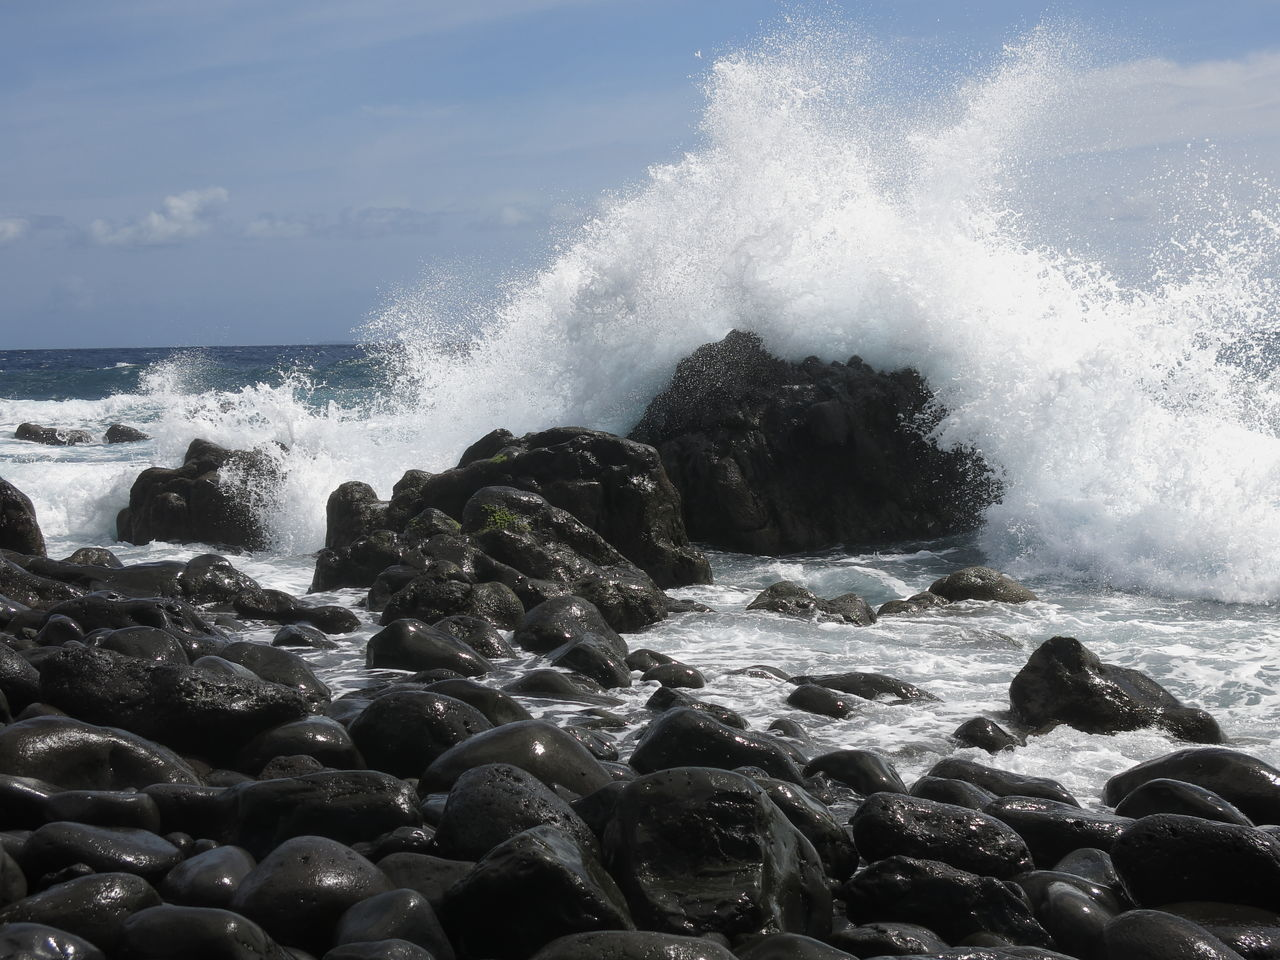 Strong waves arriving on the beach at Canico, island of Madeira Beach Beauty In Nature Black Collision Crash Crashing Day Drops Of Water Hitting Motion Nature No People Ocean Outdoors Pebbles On A Beach Power In Nature Rough Sea Round Shape Sea Splashing Stones And Water Water Wave